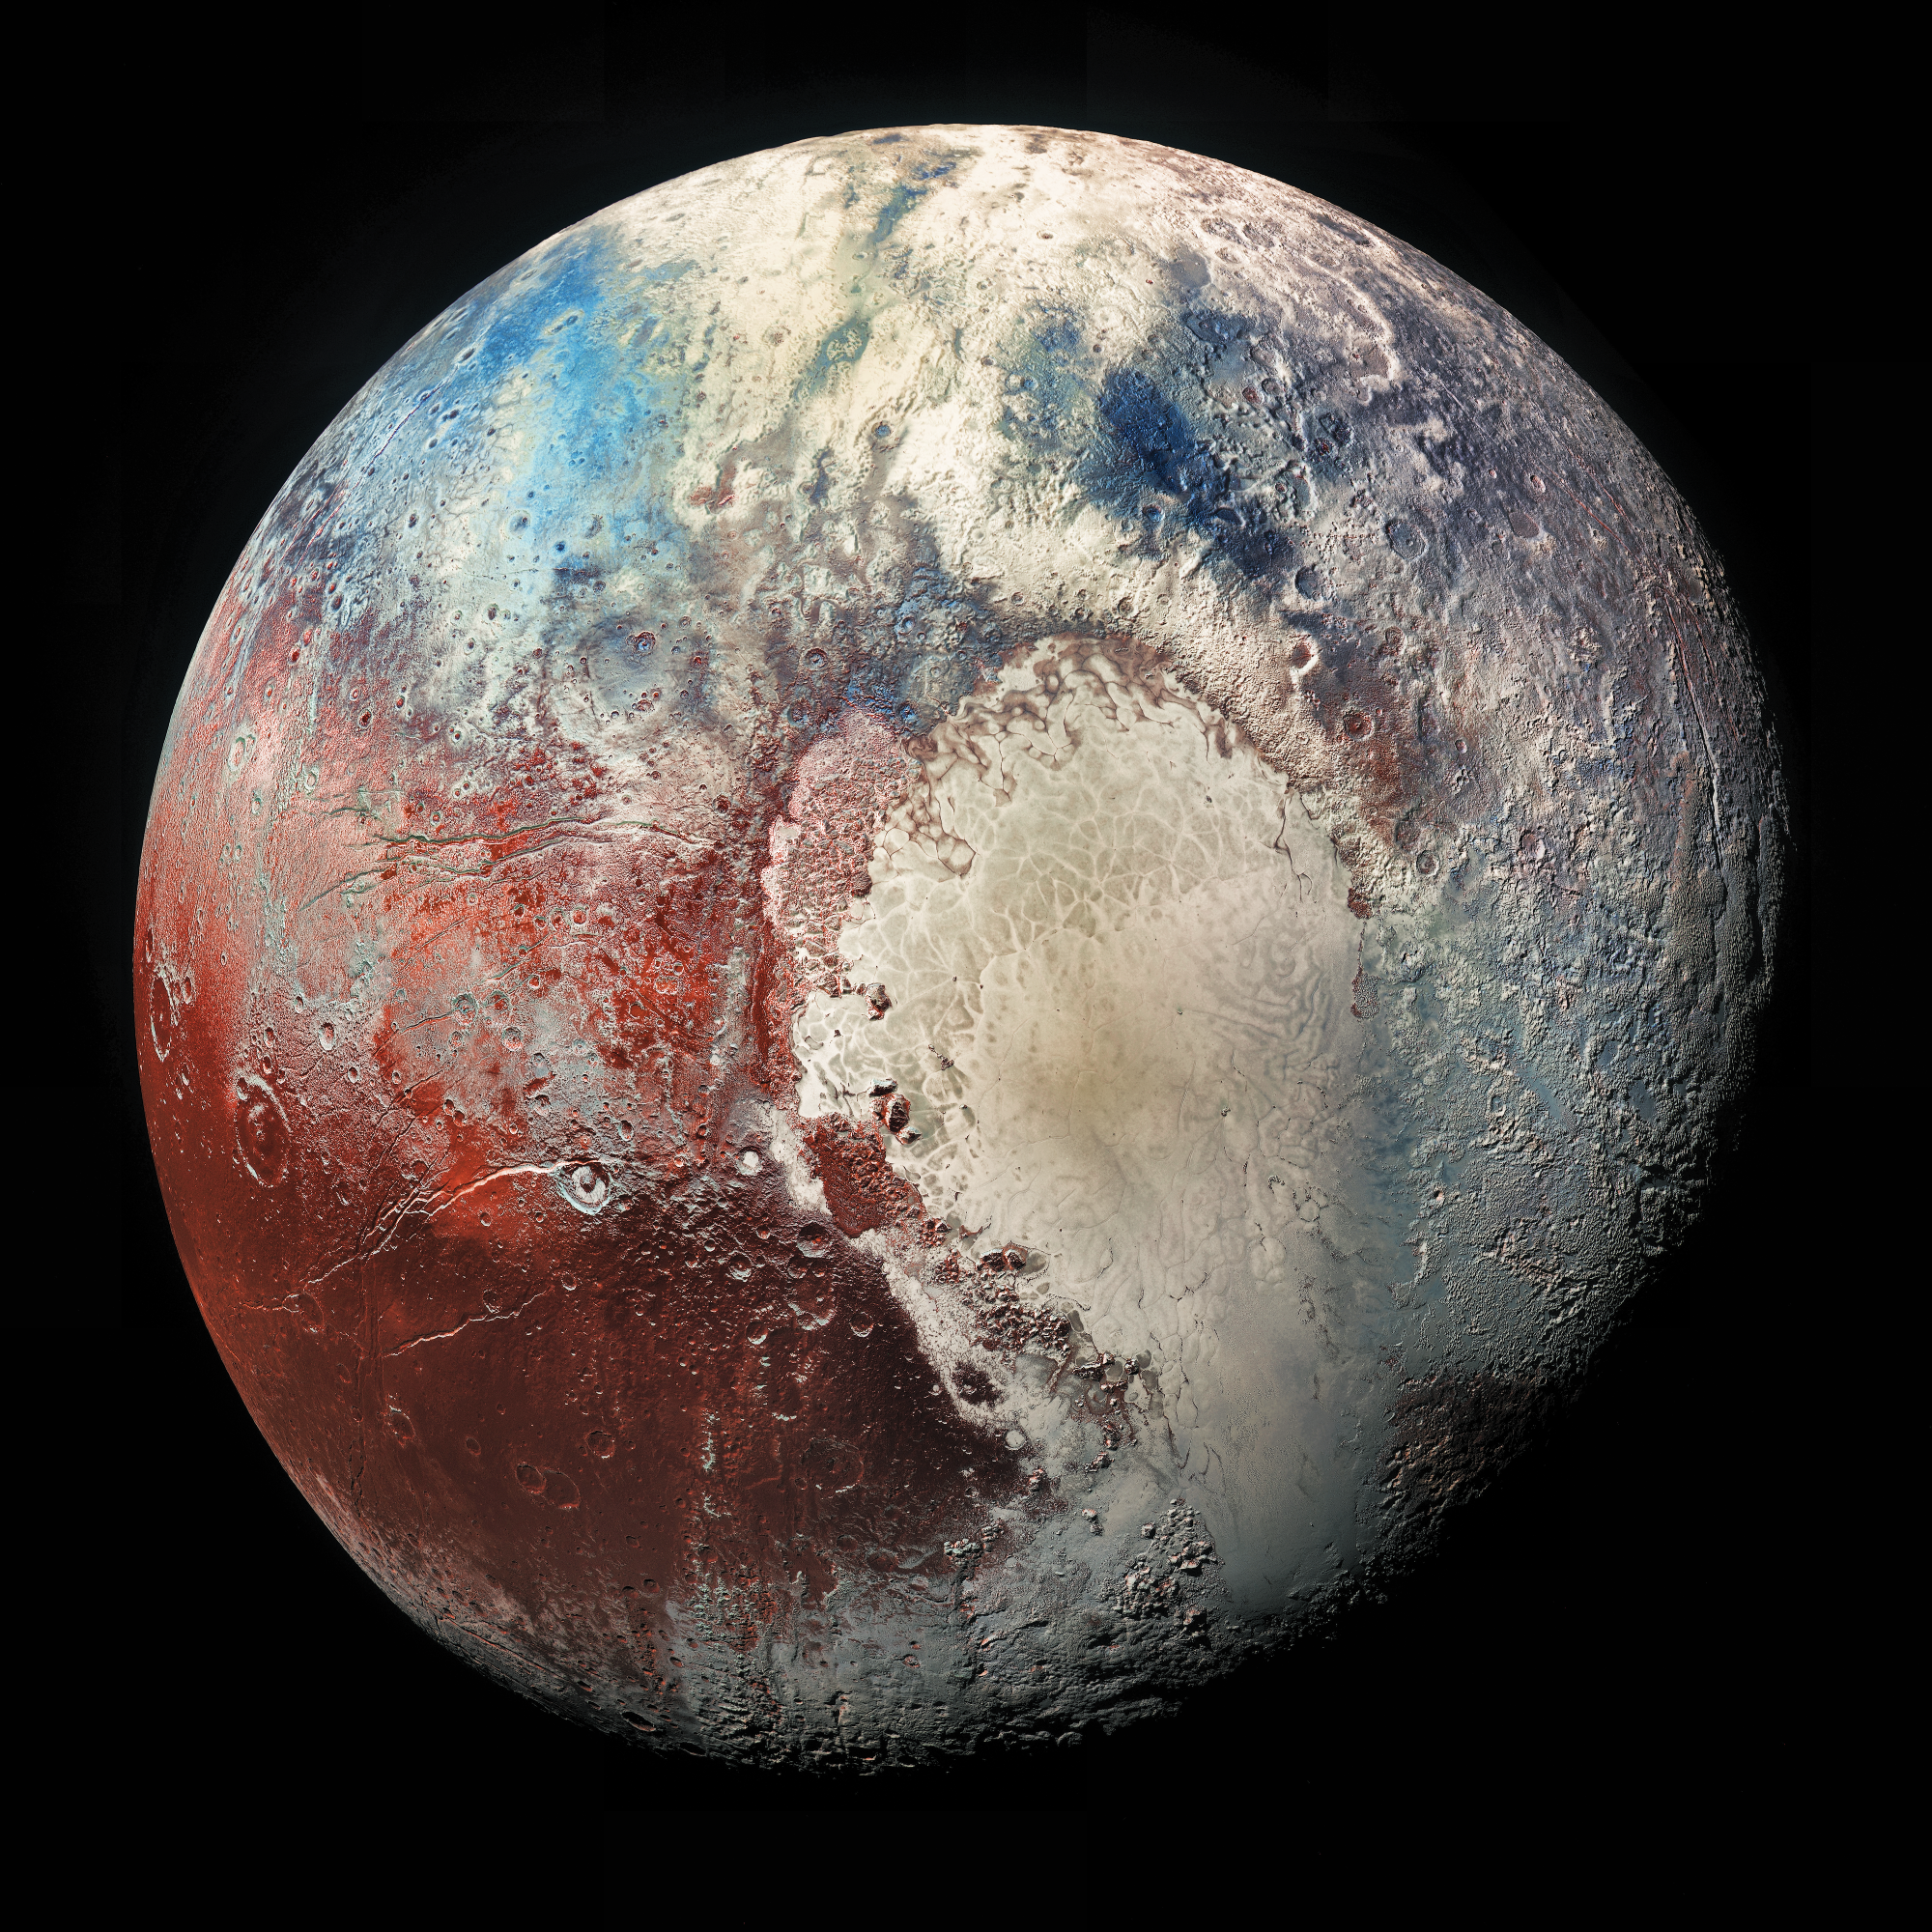 Picture of the planet Pluto